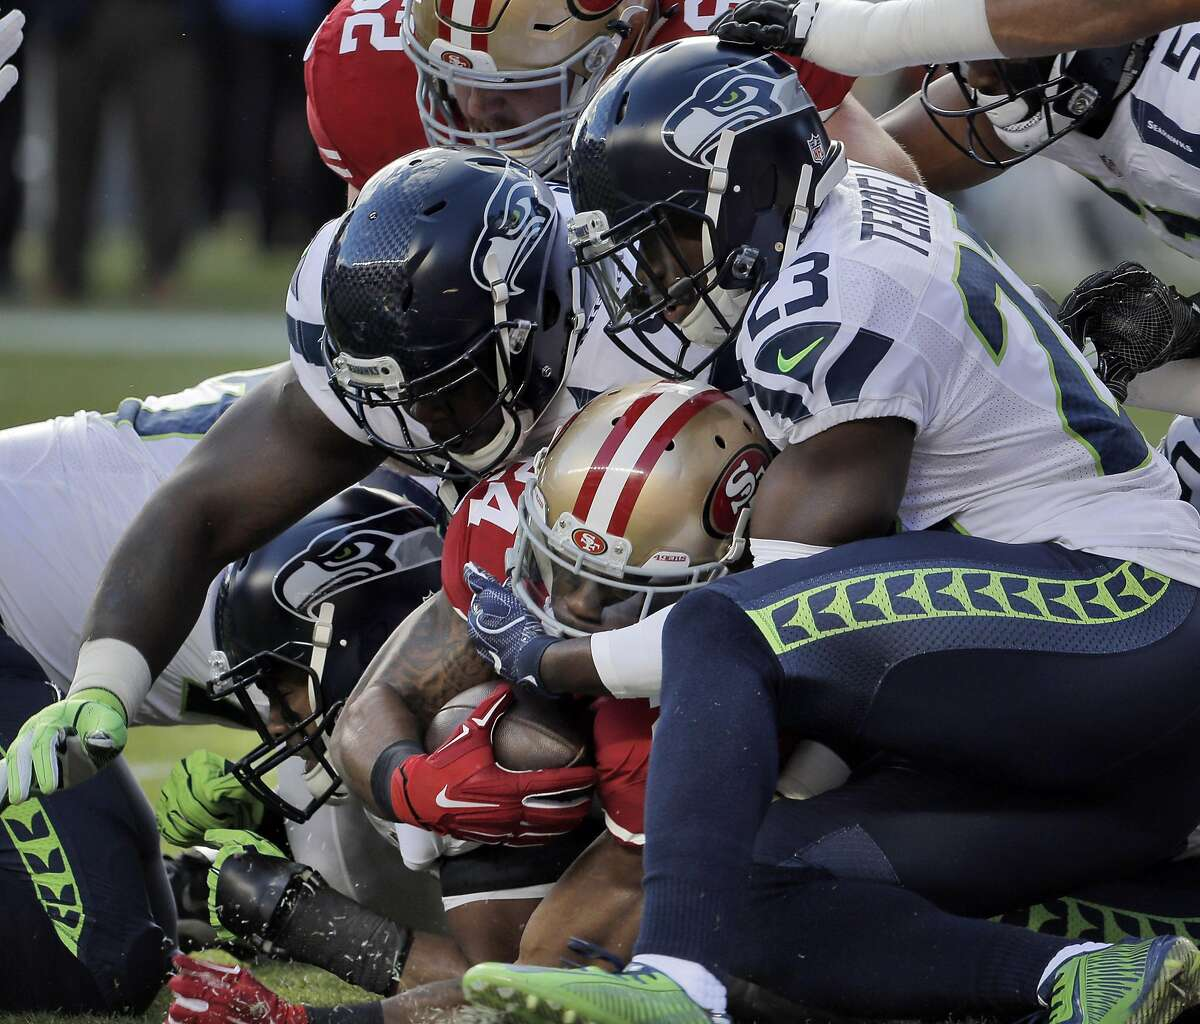 Shaun Draughn (24) punches through for his first touchdown in the first half as the San Francisco 49ers played the Seattle Seahawks at Levi's Stadium in Santa Clara on Sunday, January 1, 2017.